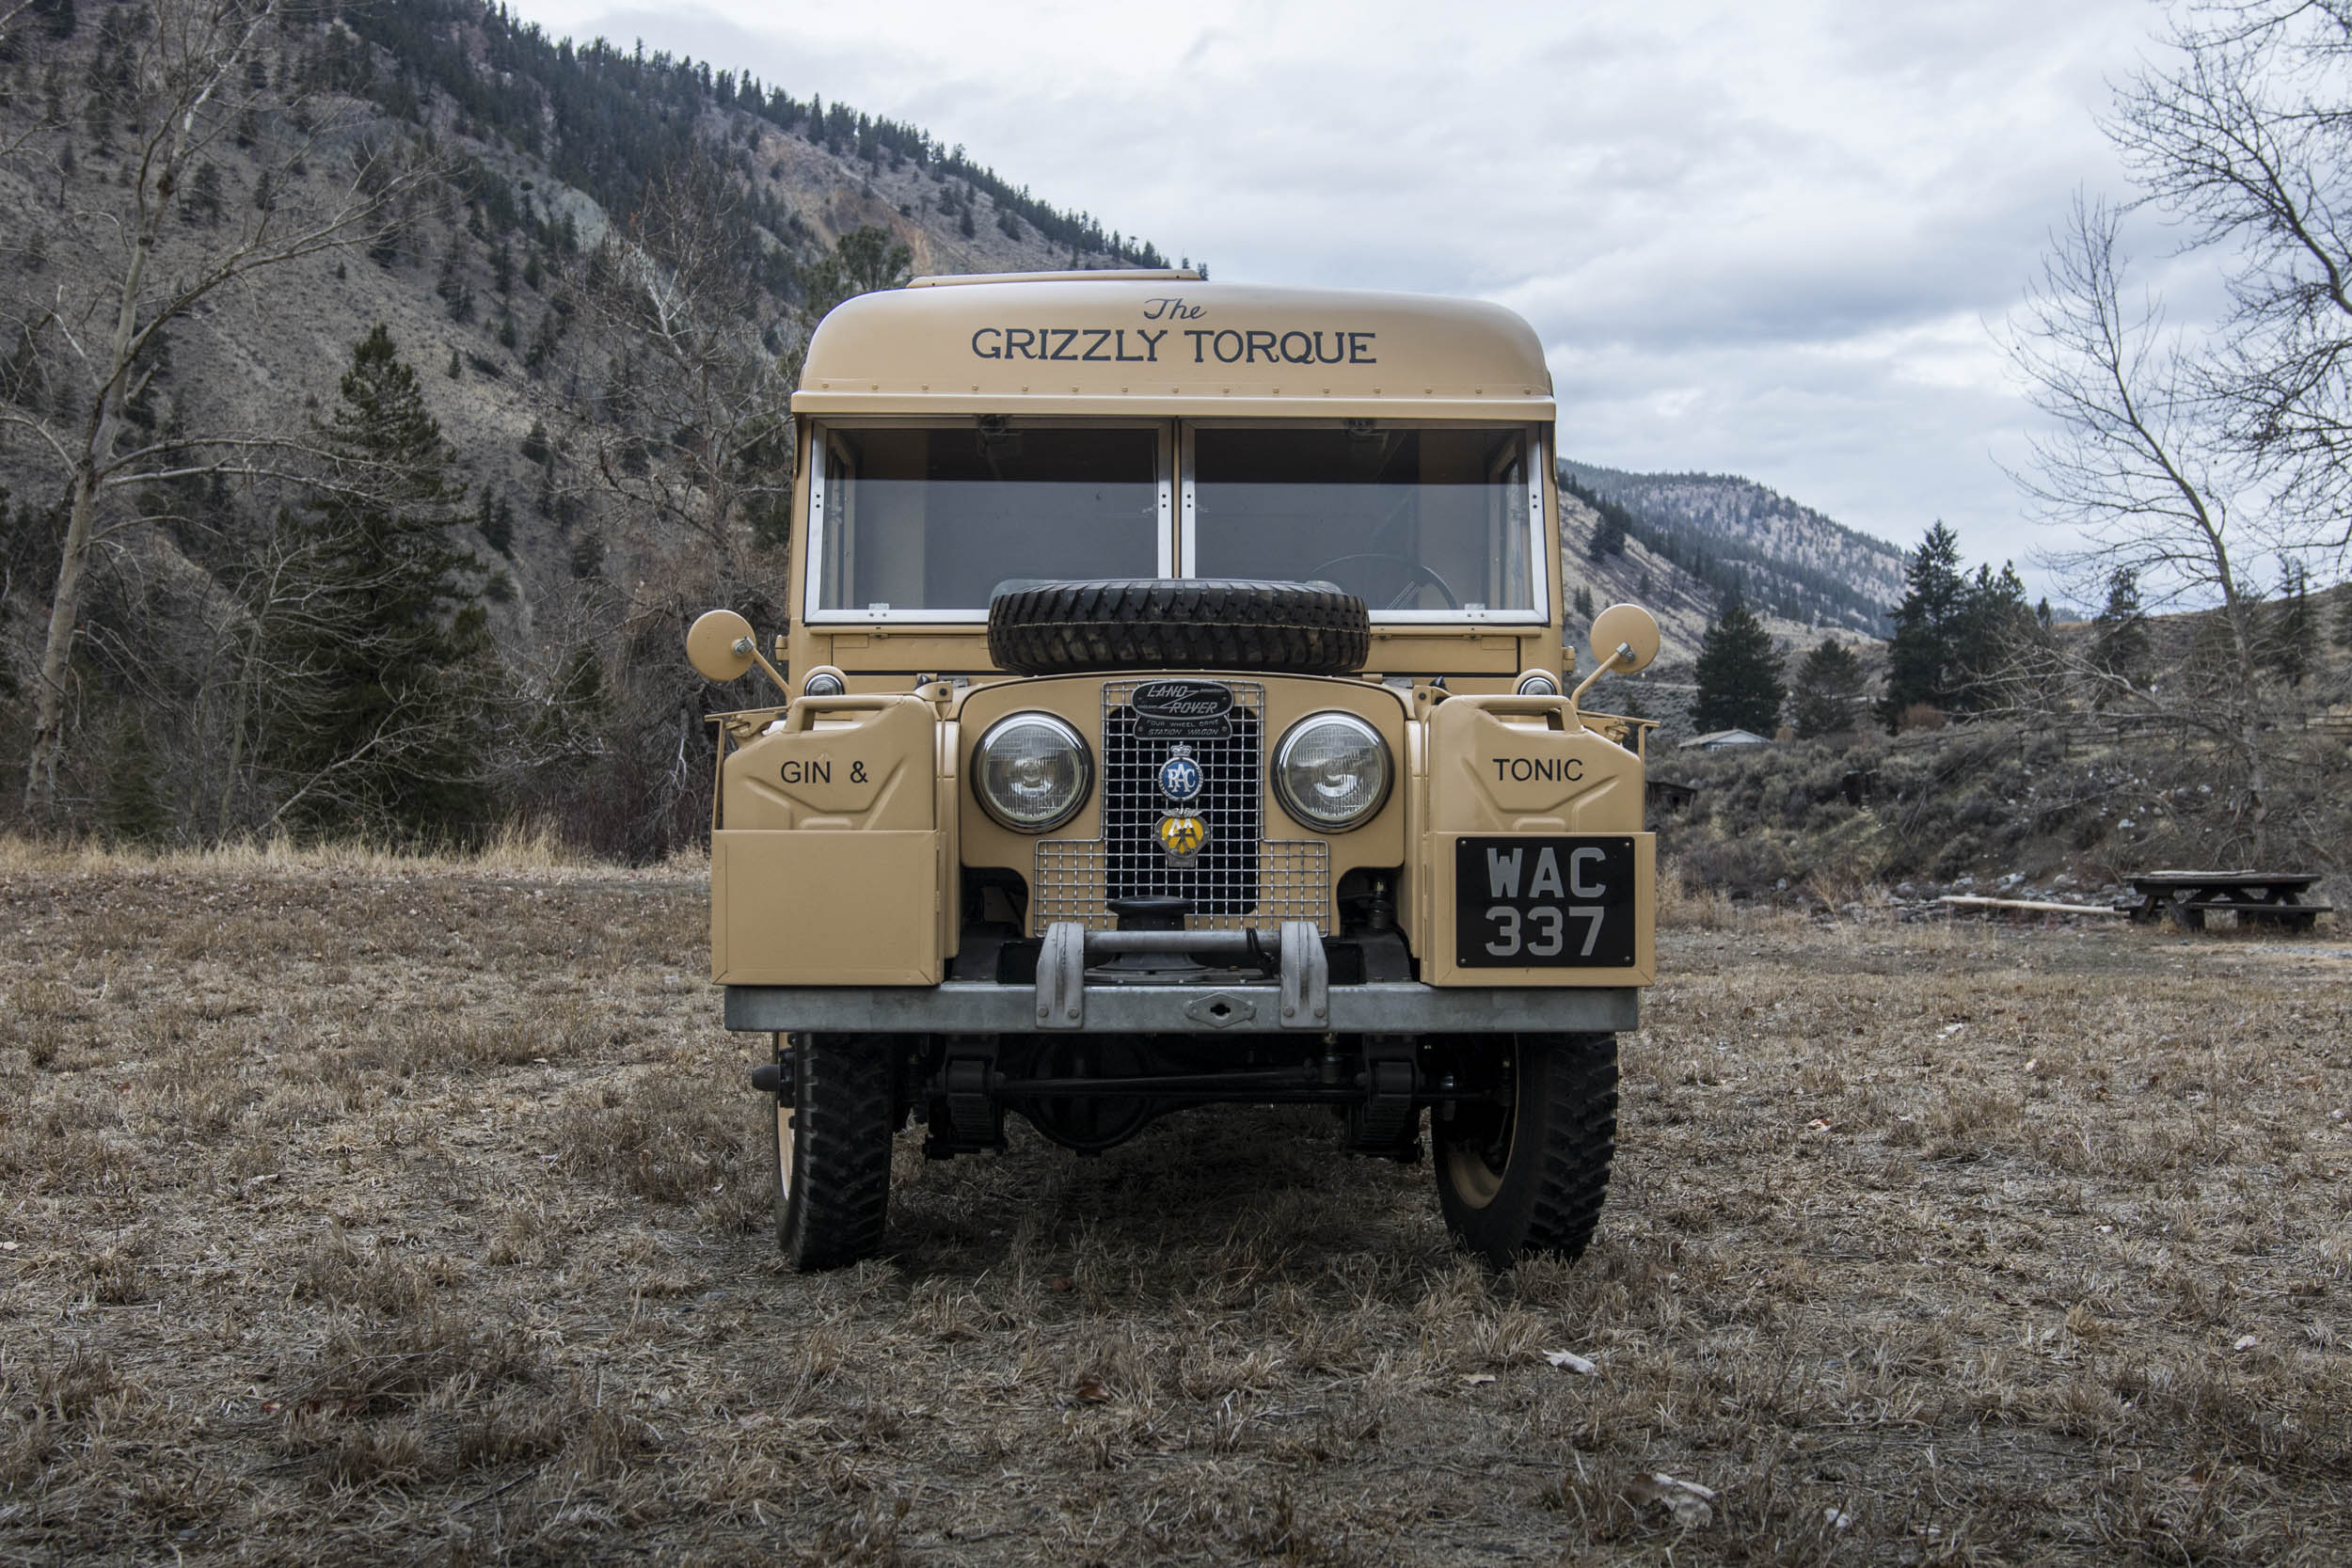 1957 Land Rover the Grizzly Torque front